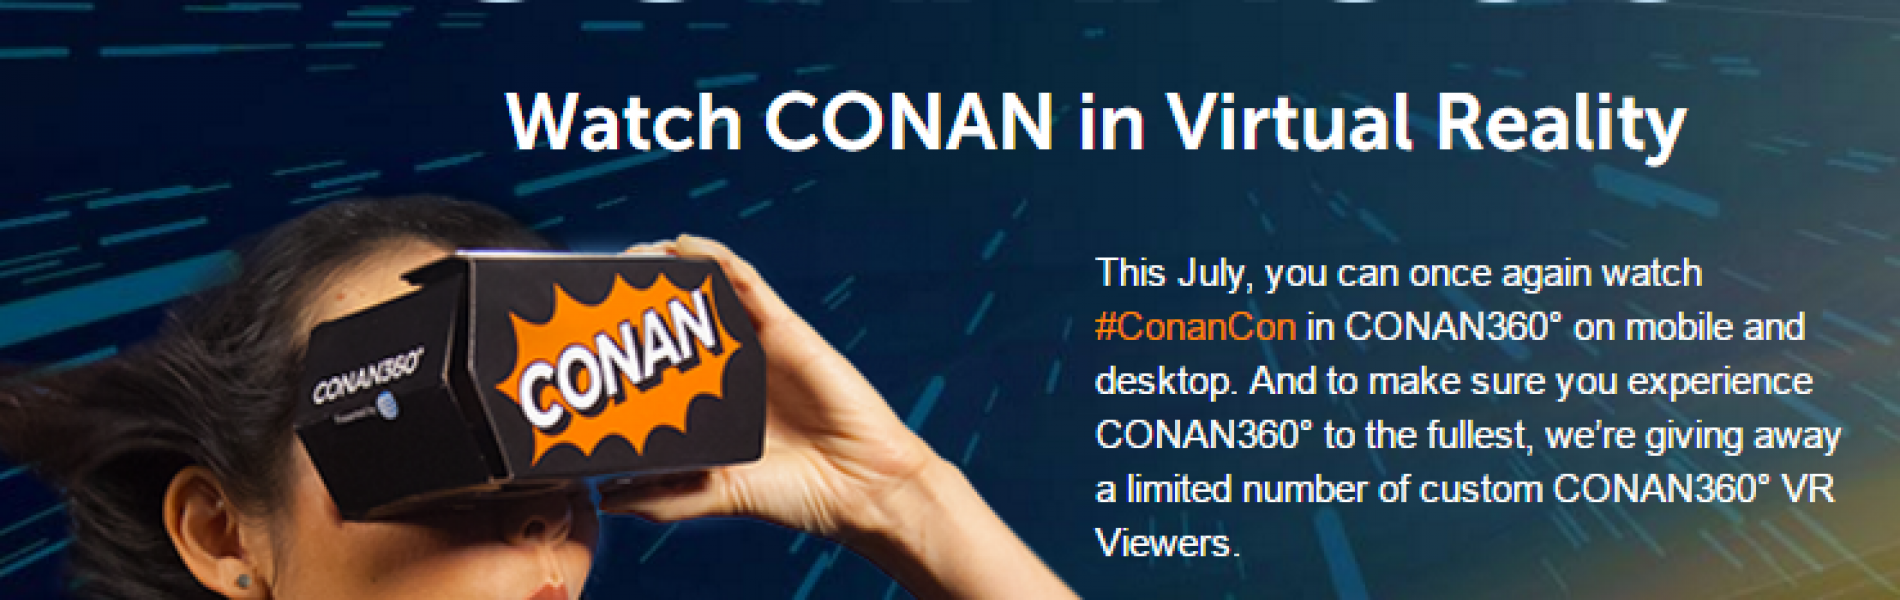 Free Conan360° Google Cardboard VR Viewer